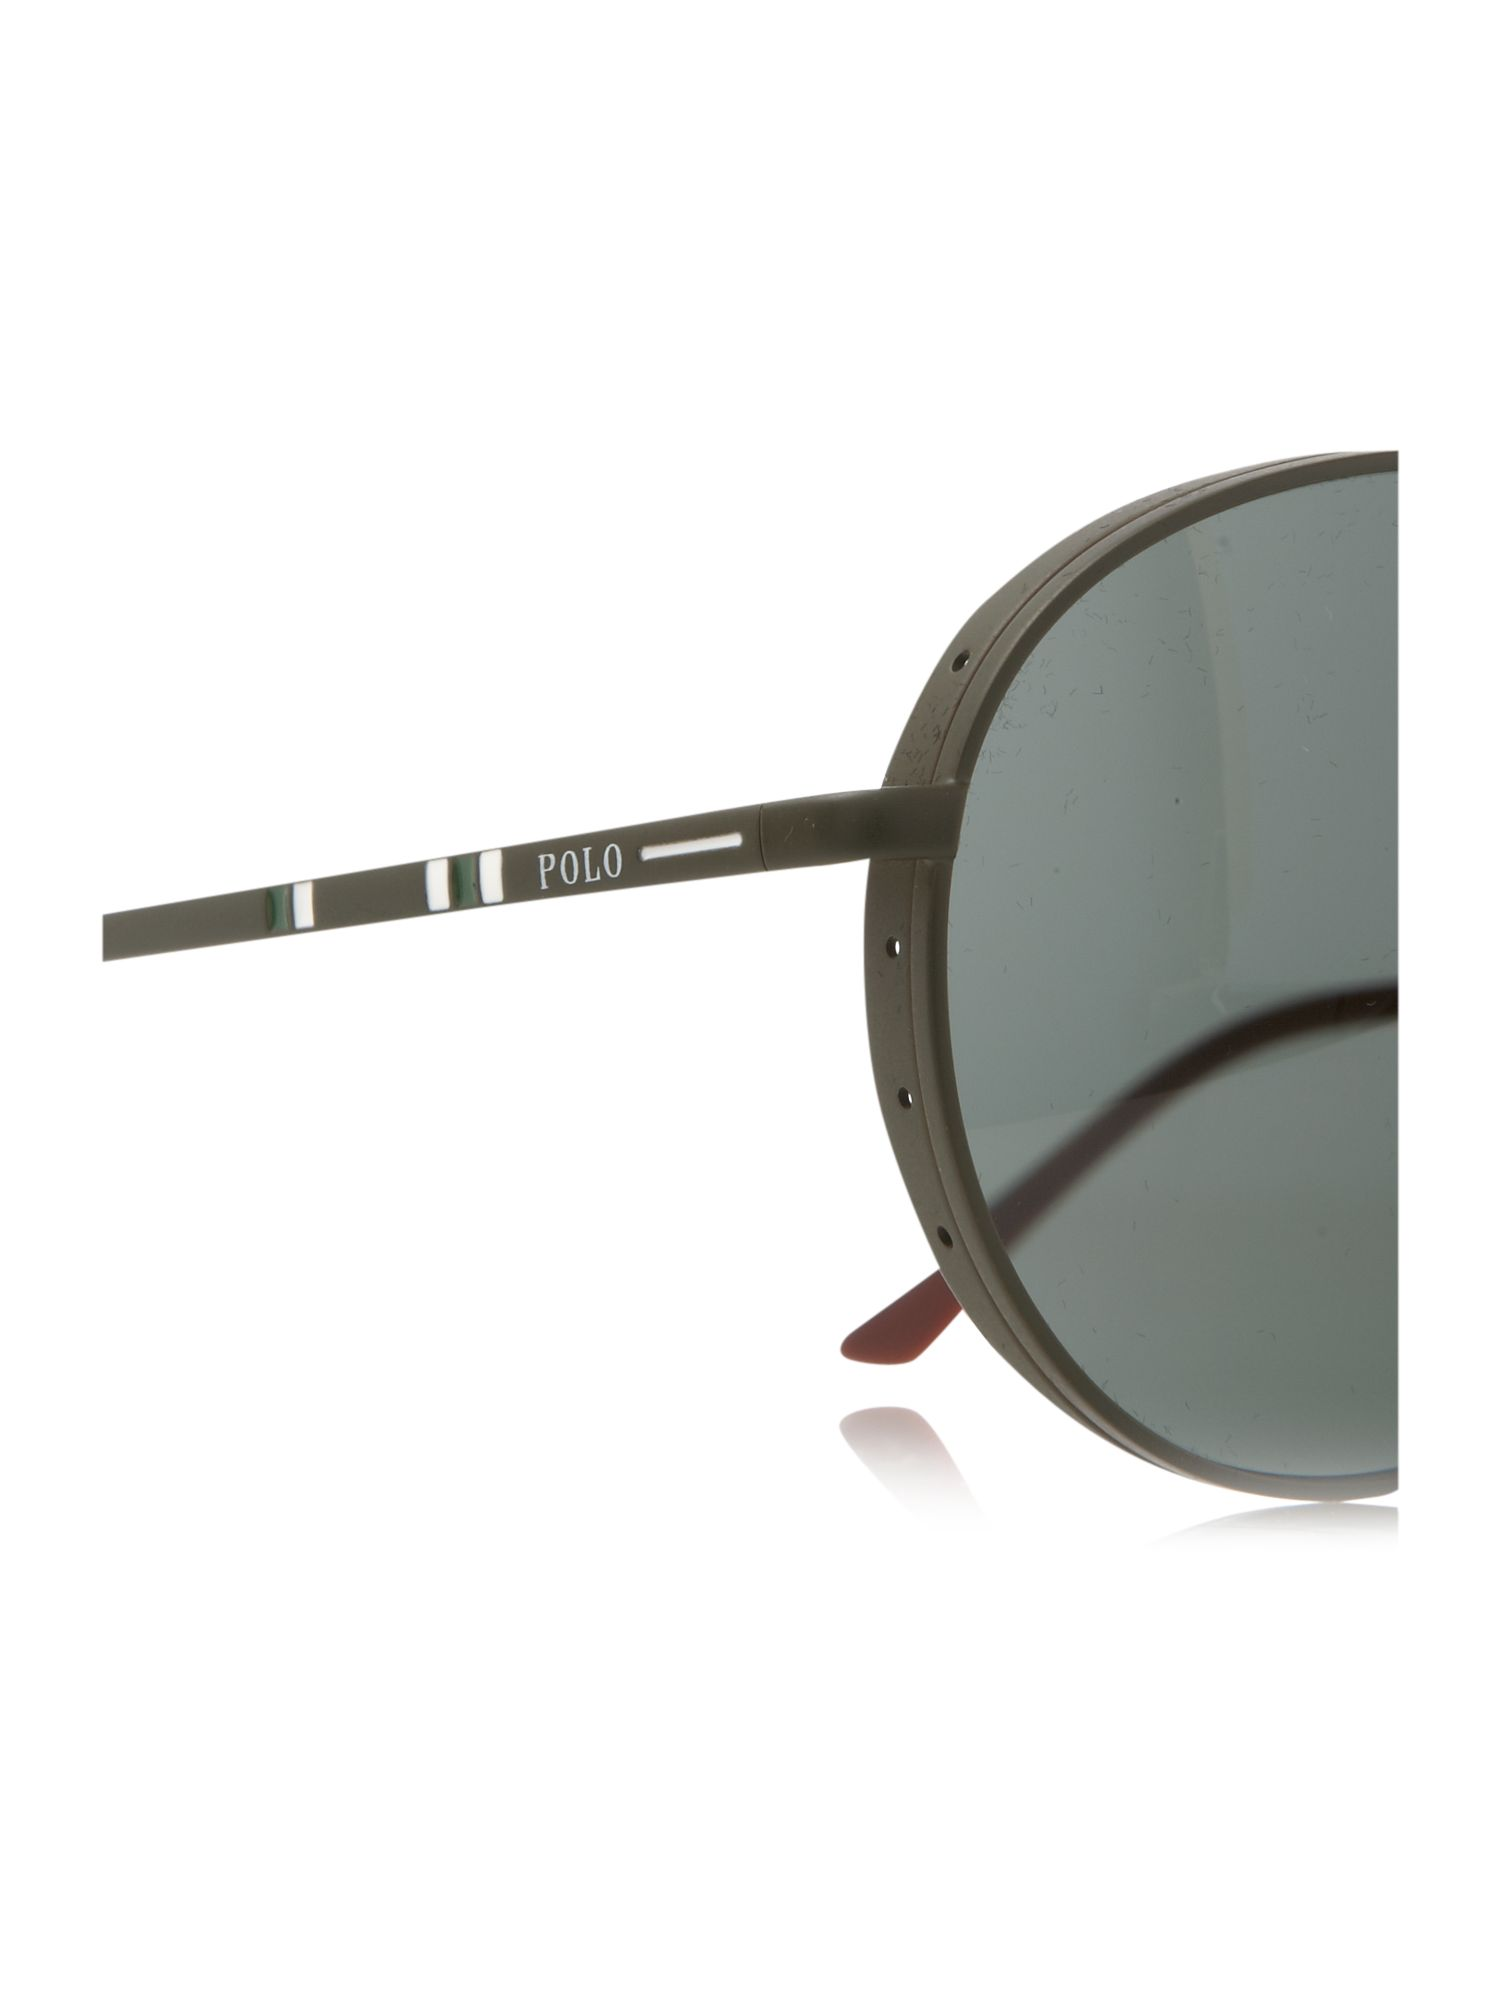 Ralph Lauren Sunglasses Mens  polo ralph lauren mens sunglasses in gray for men lyst